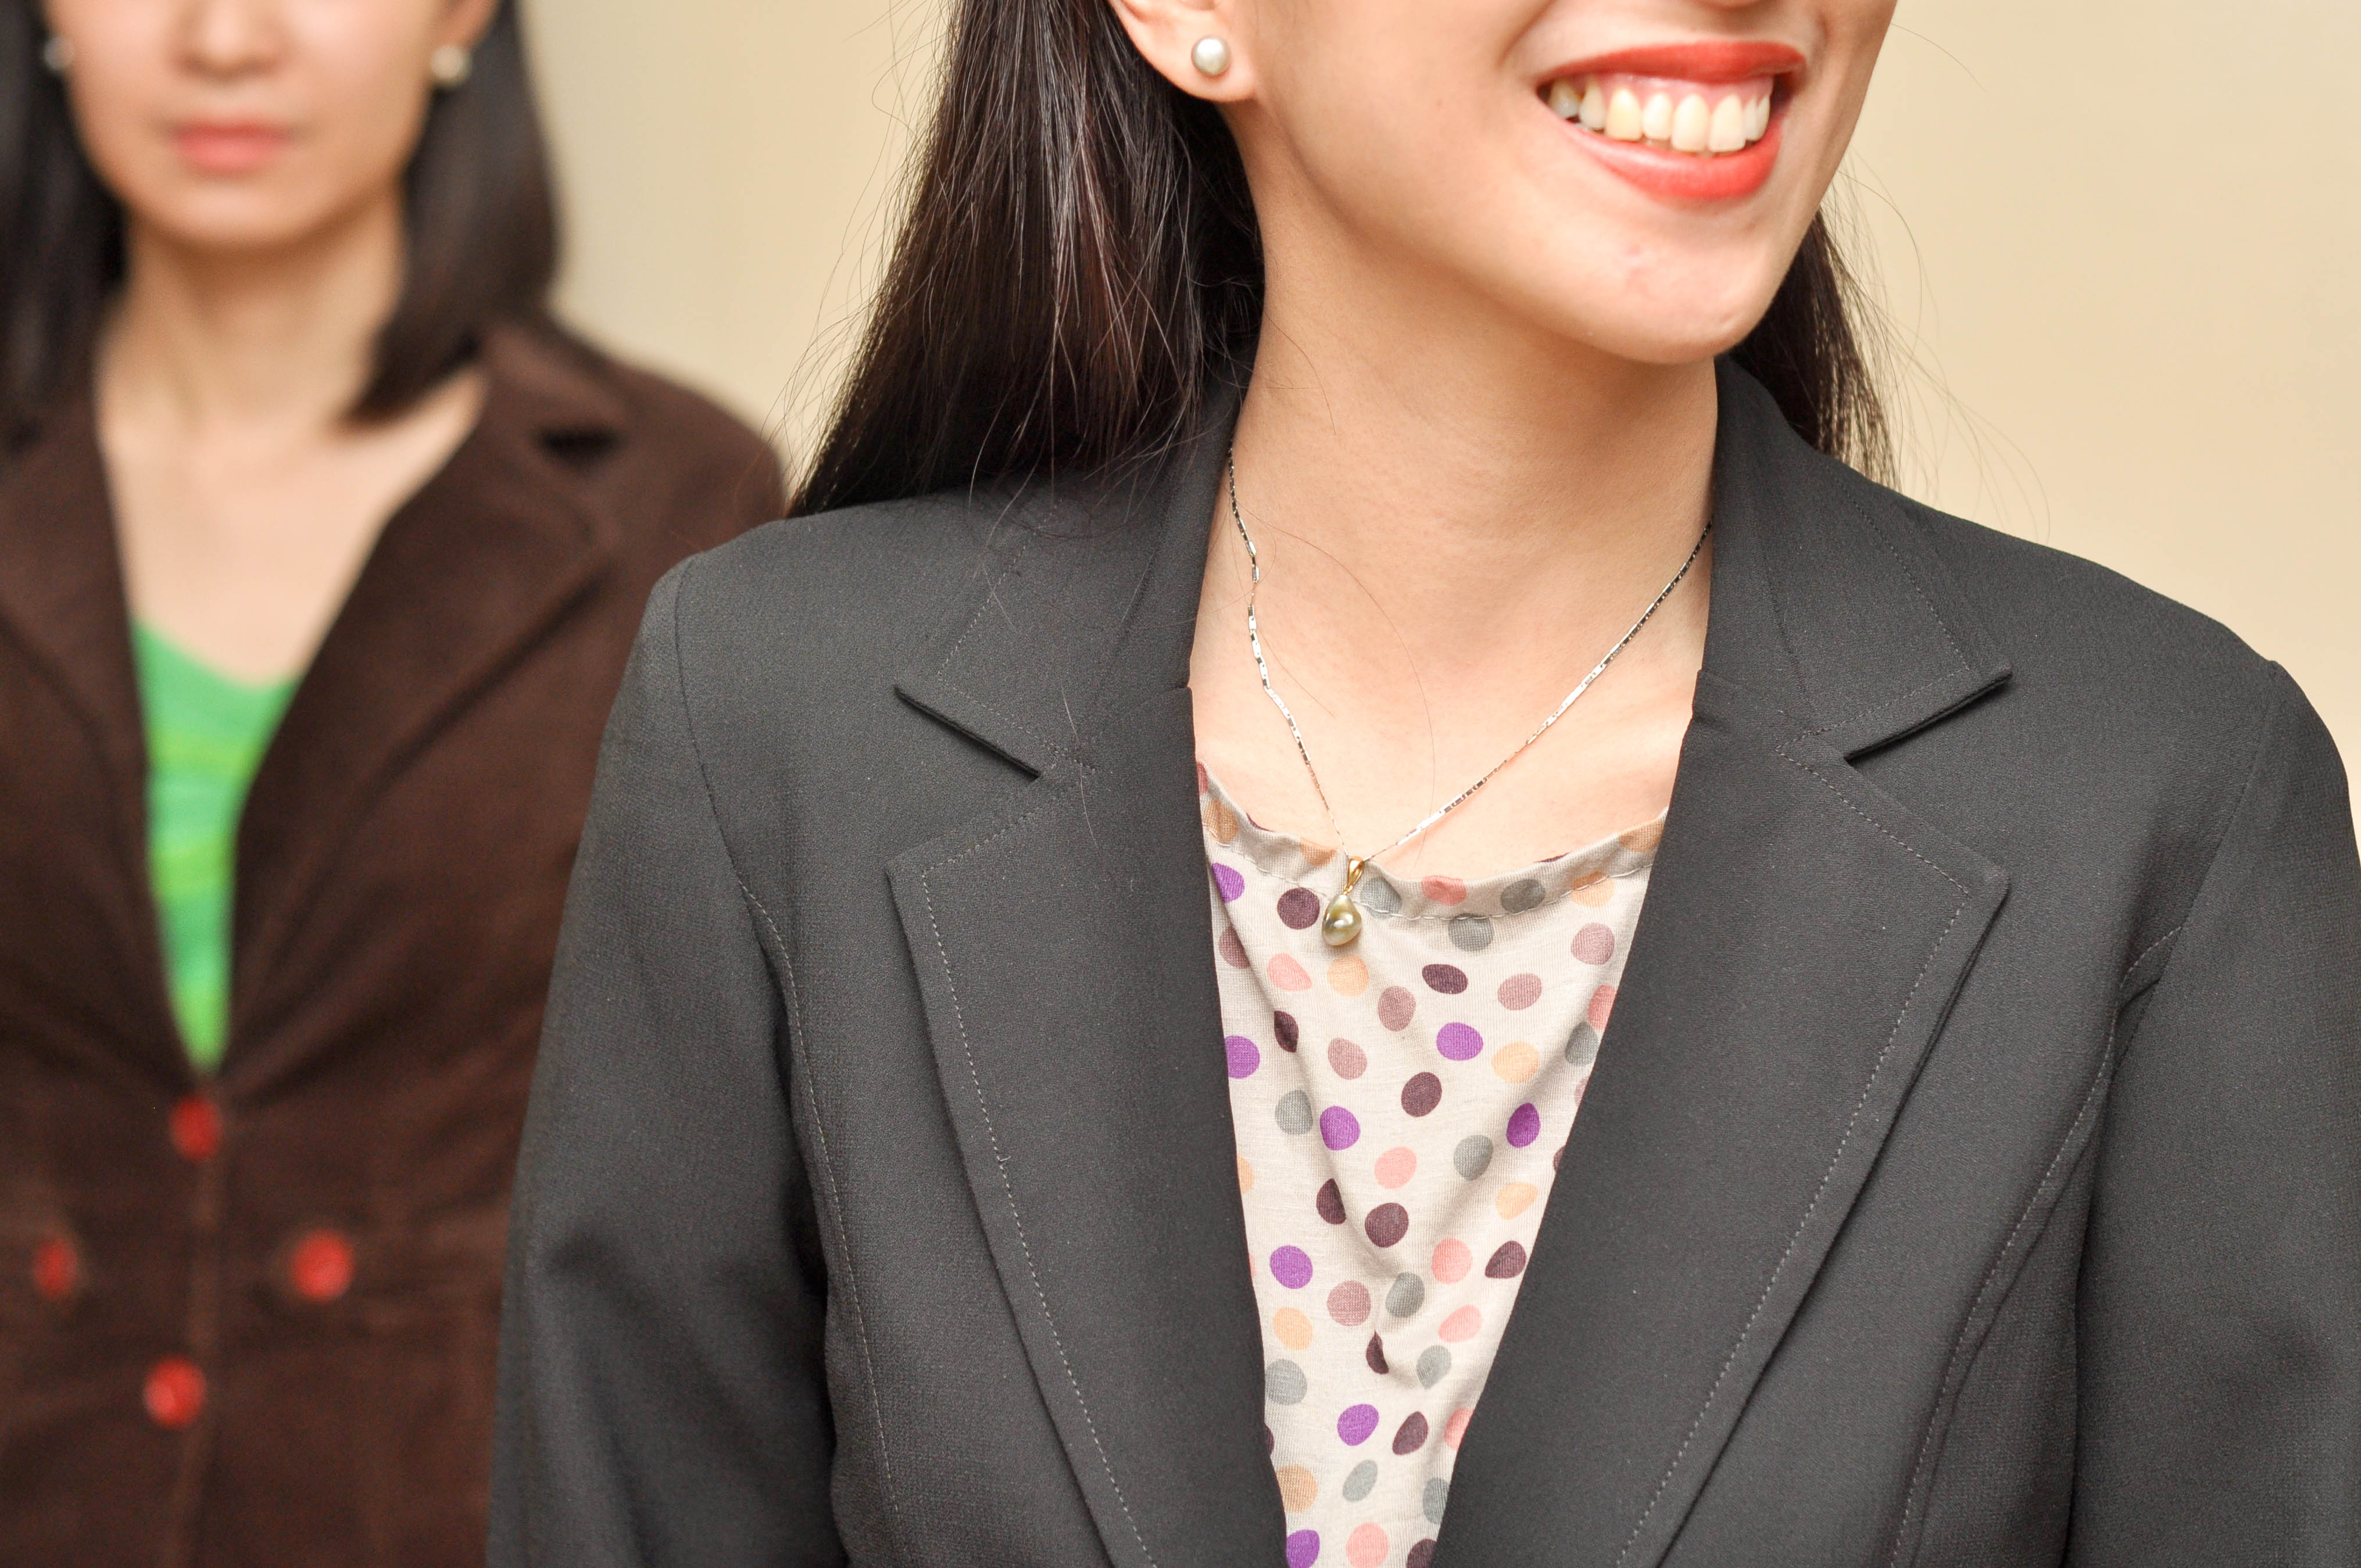 How To Make A Good Impression At A First Job Interview